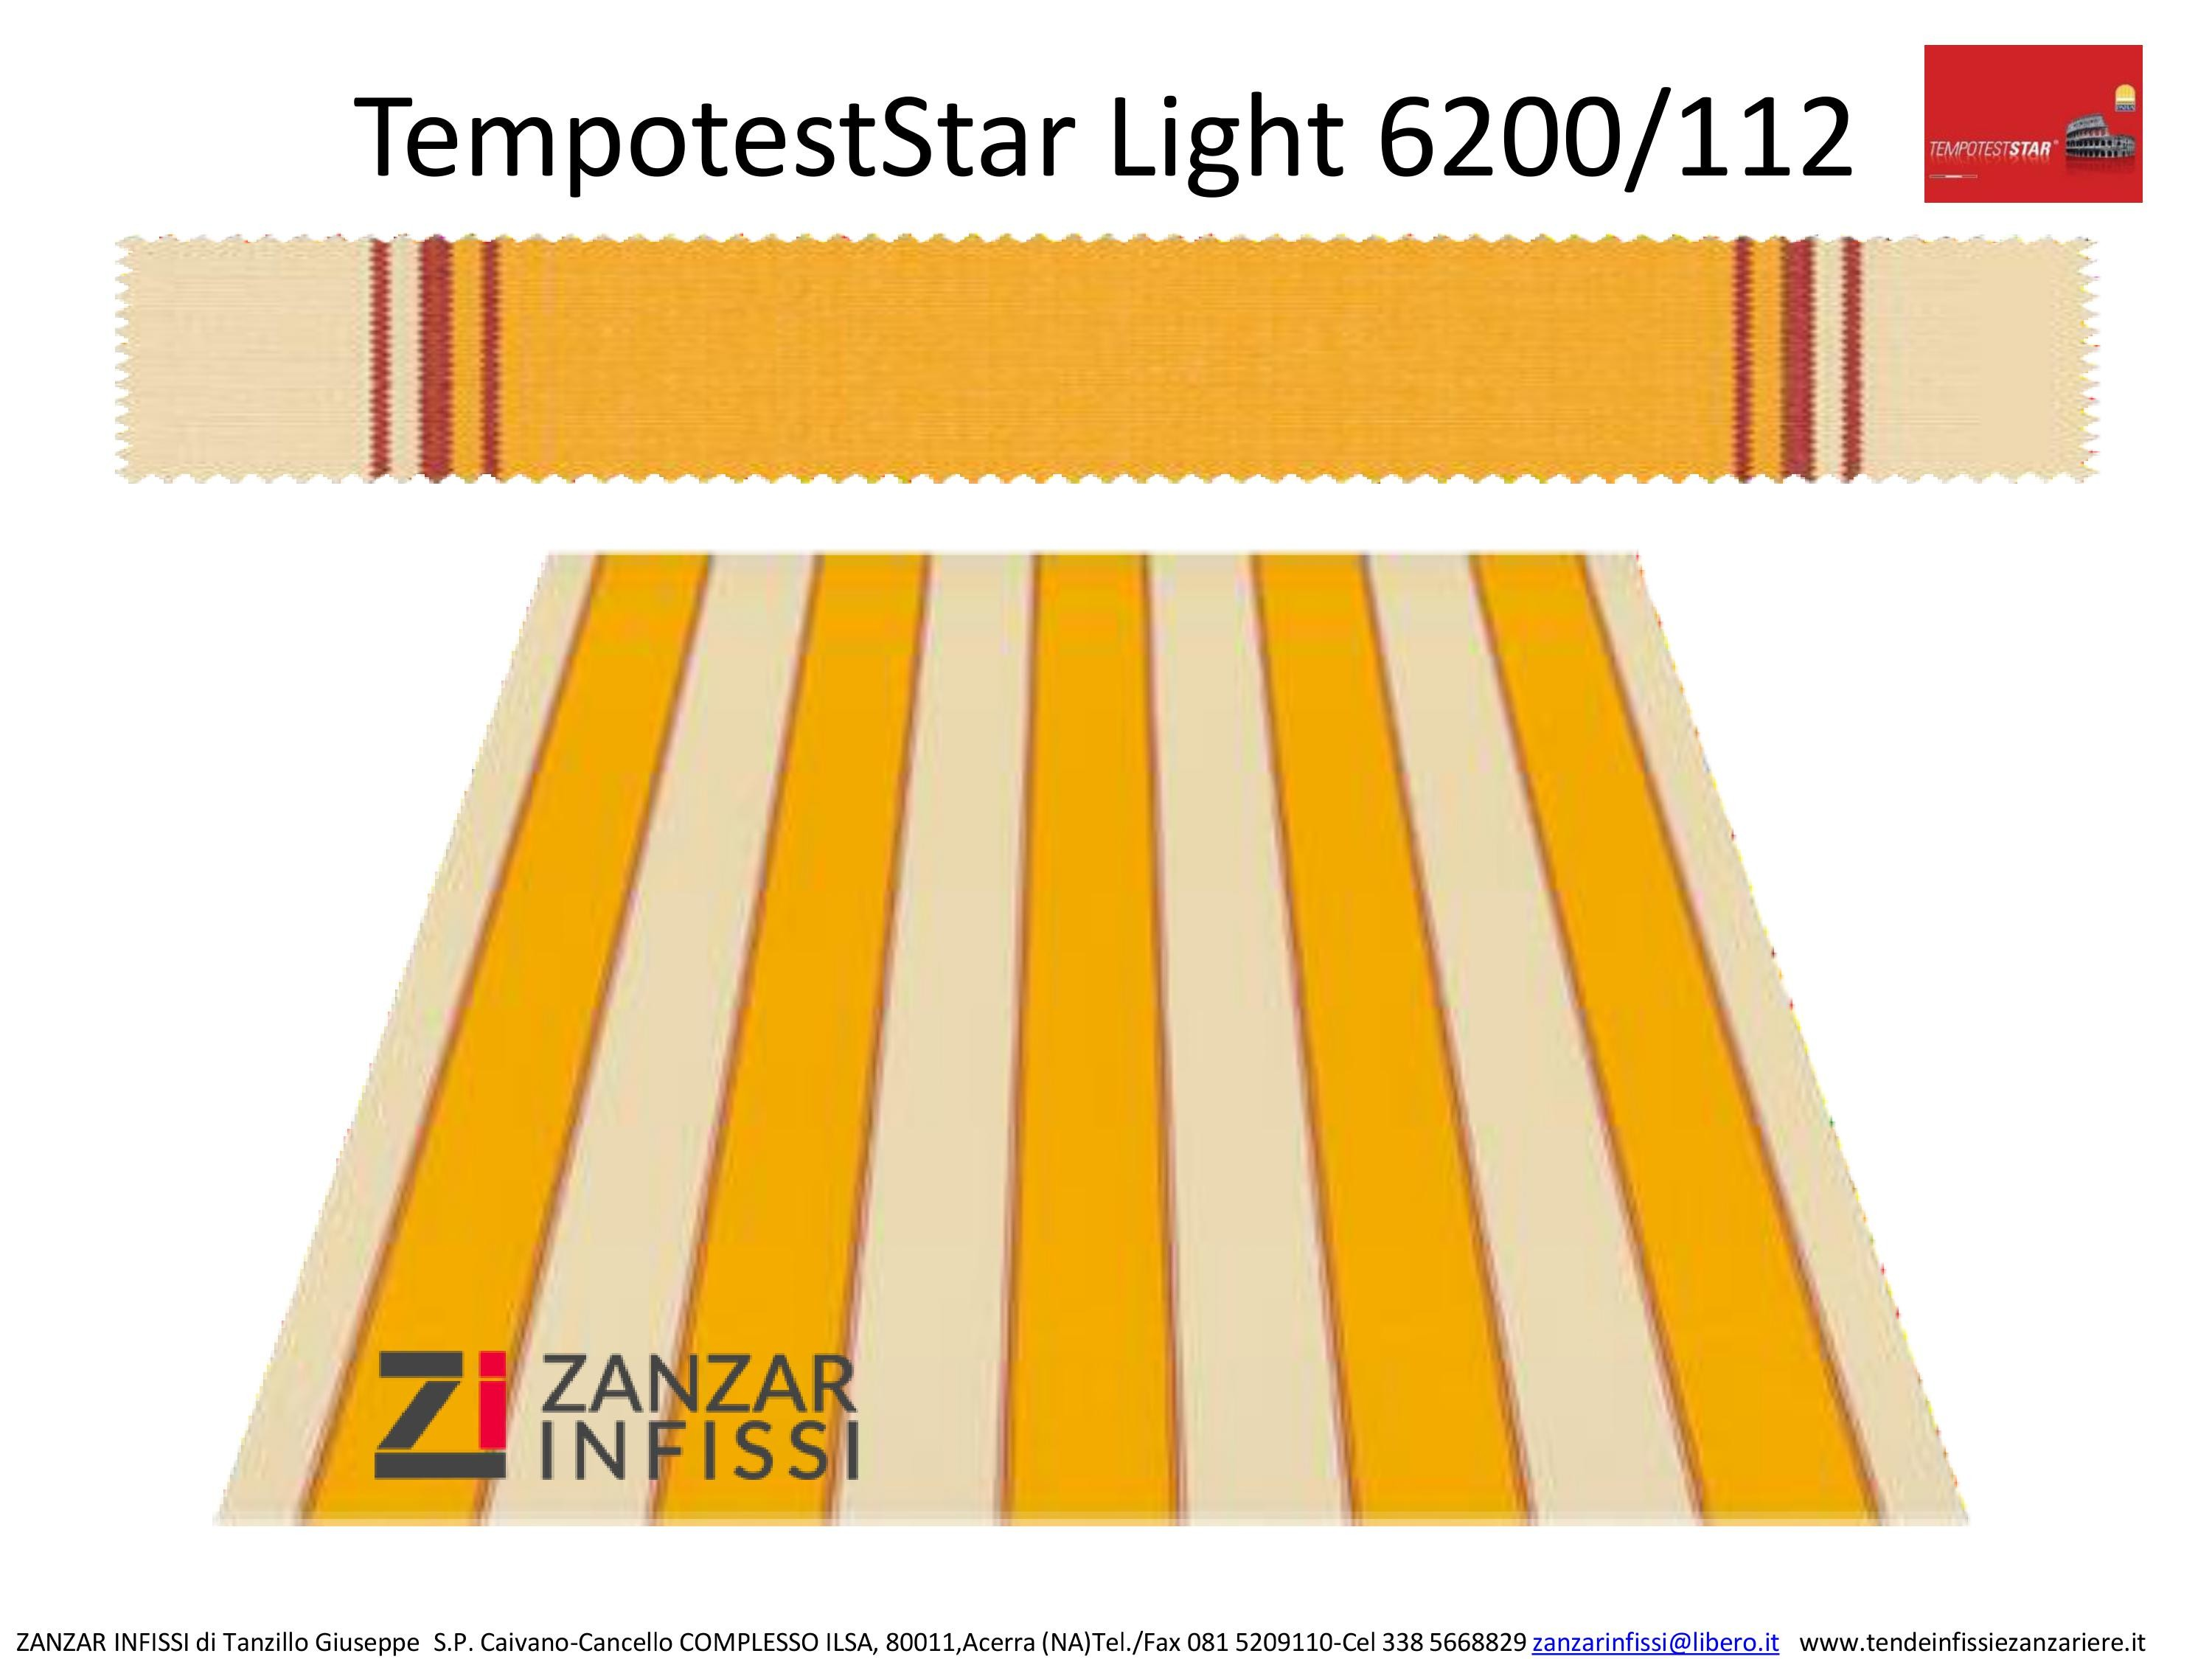 Tempotest star light 6200/112